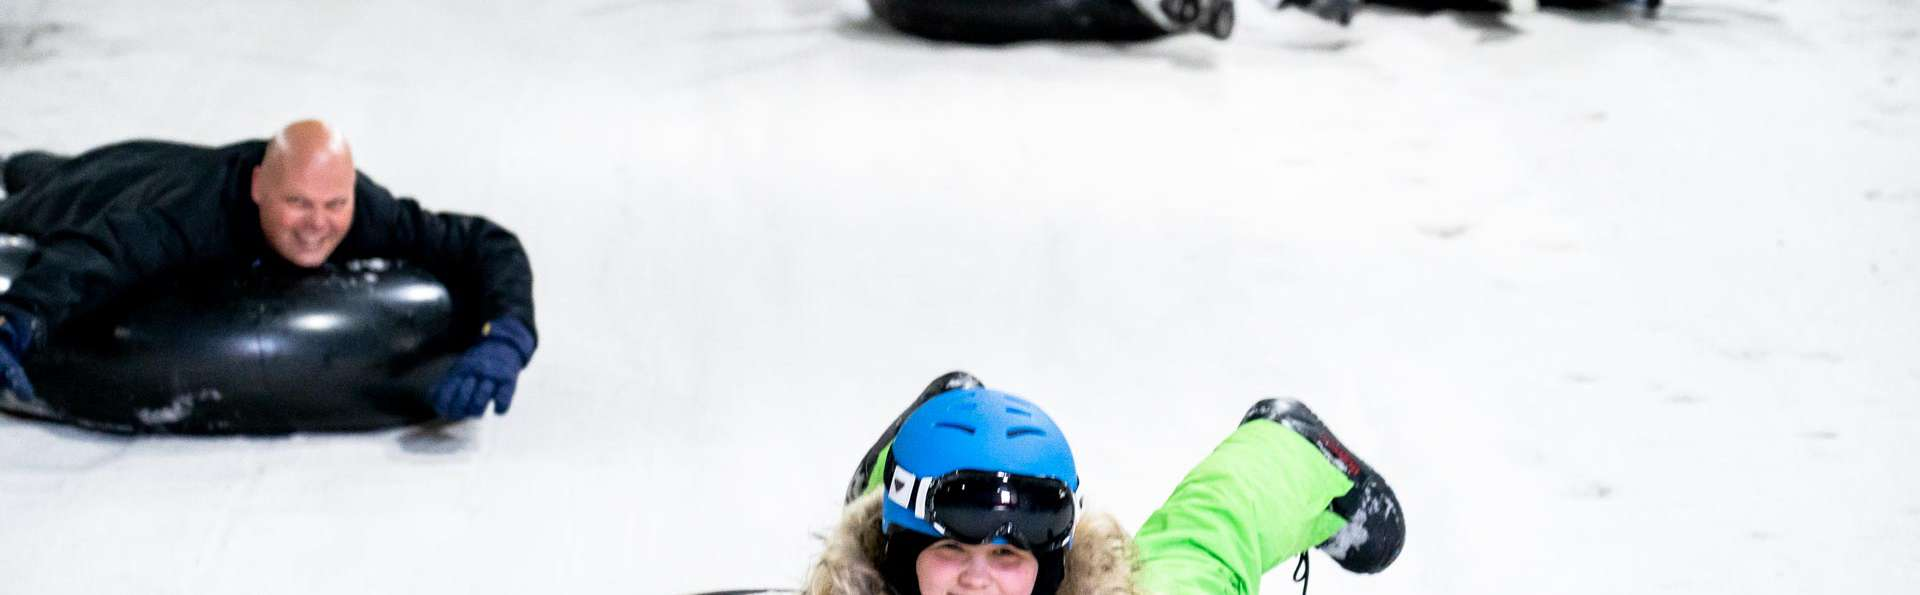 Hotel SnowWorld Landgraaf - EDIT_N2_ACTIVITY_03.jpg